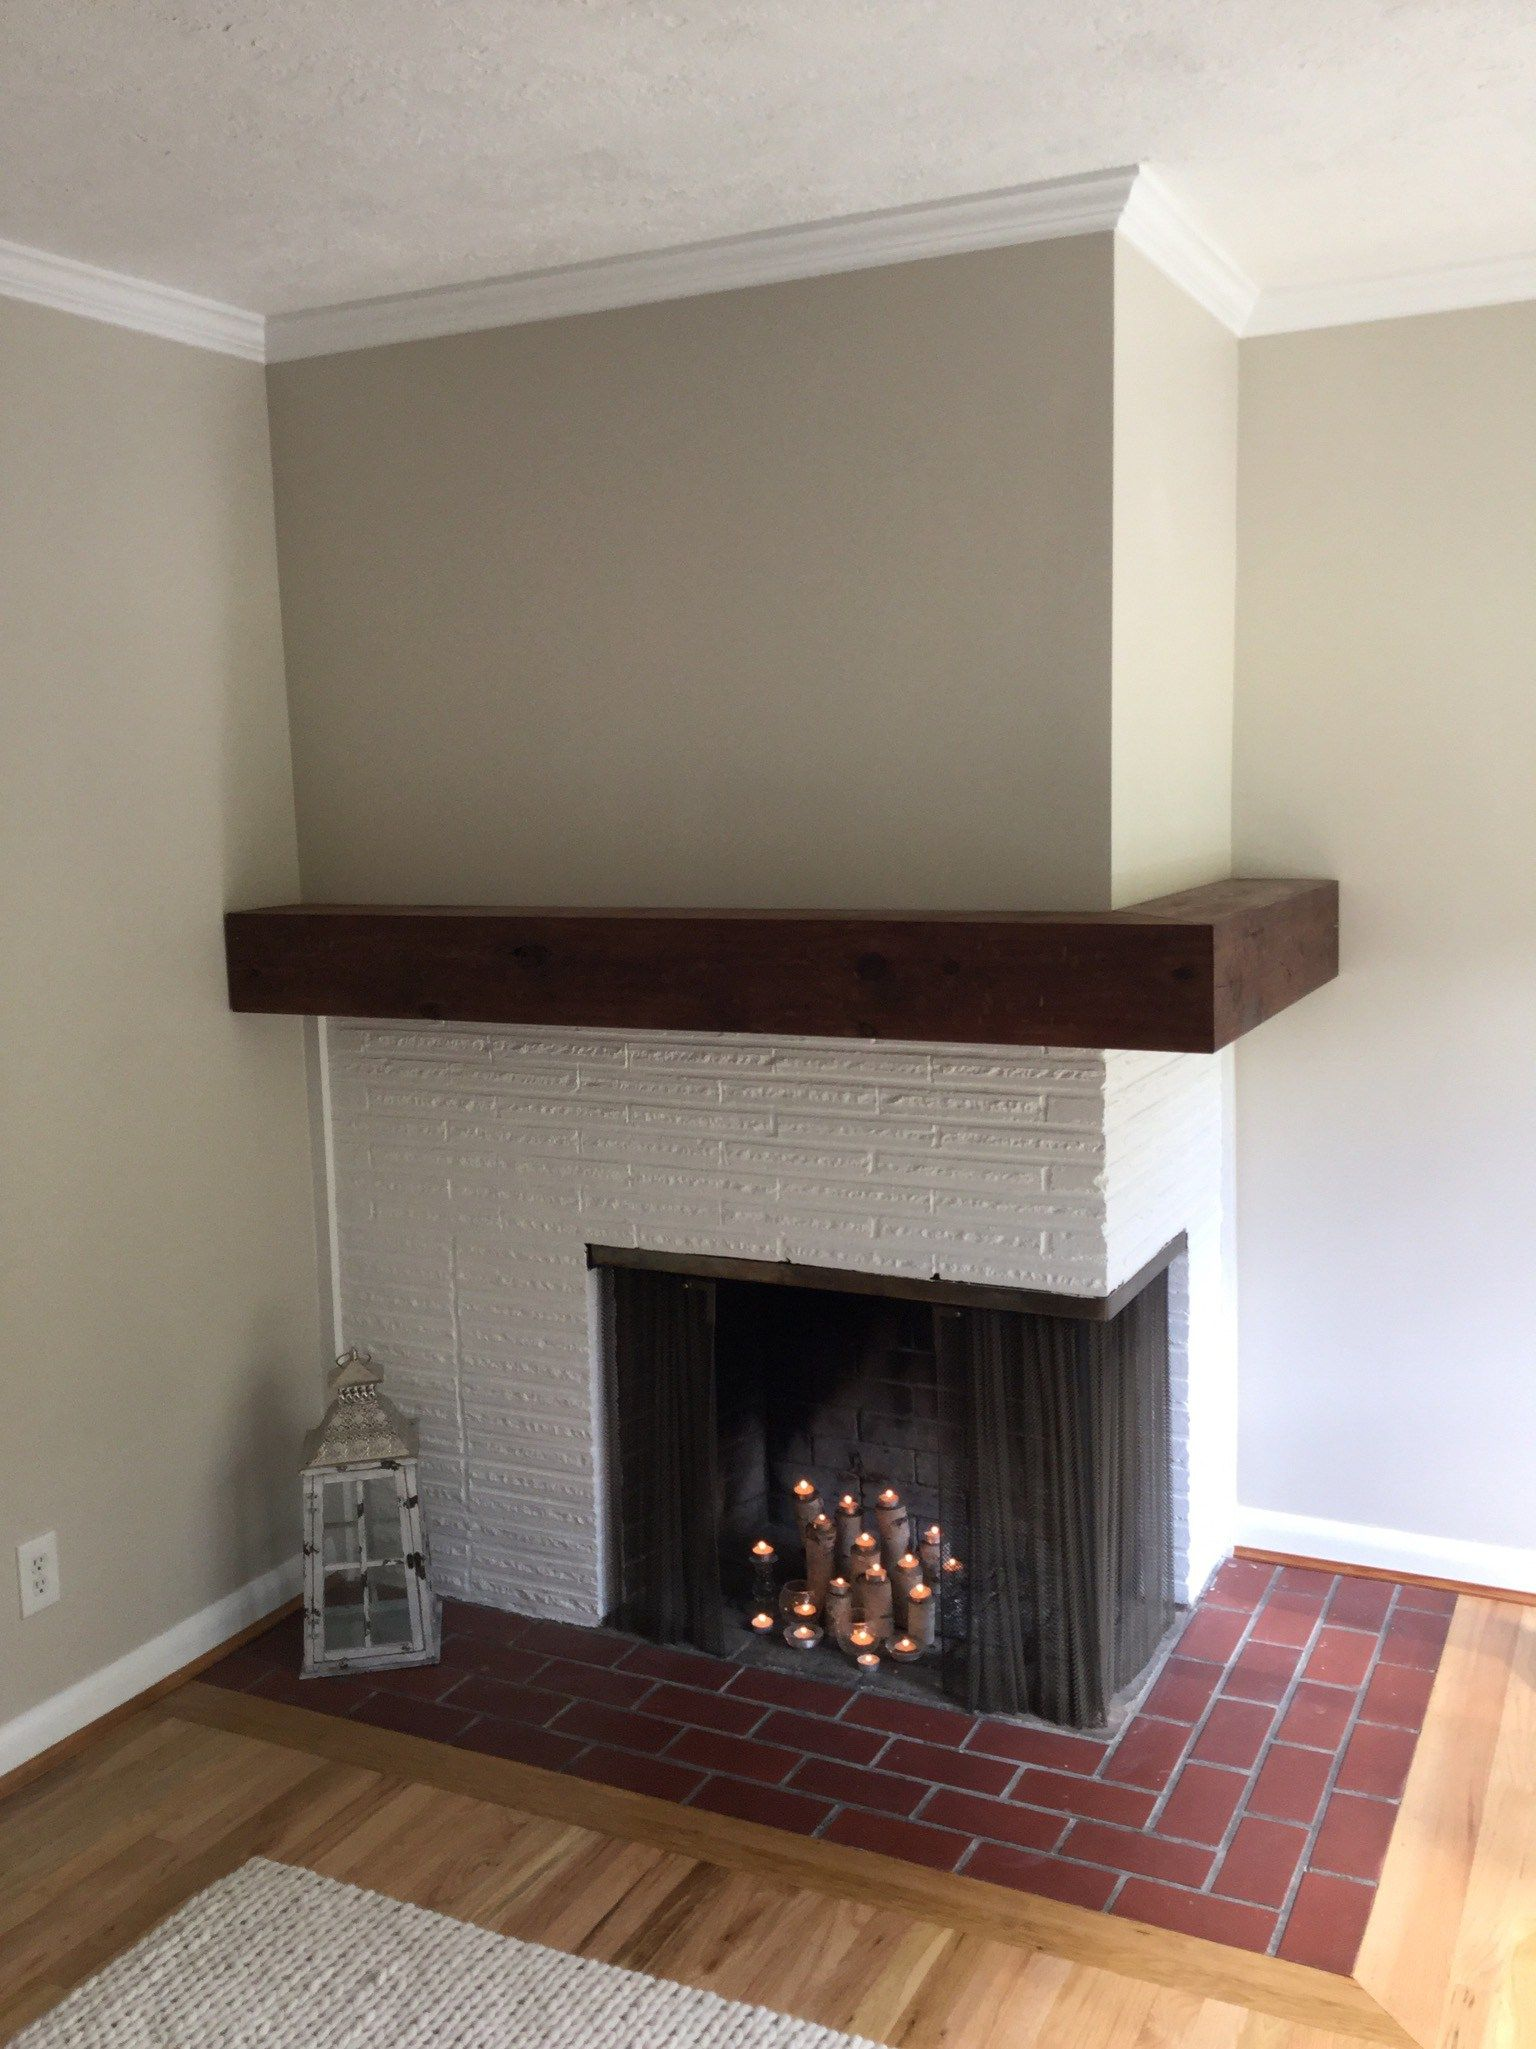 DIY RUSTIC FIREPLACE MANTEL (With images) Corner